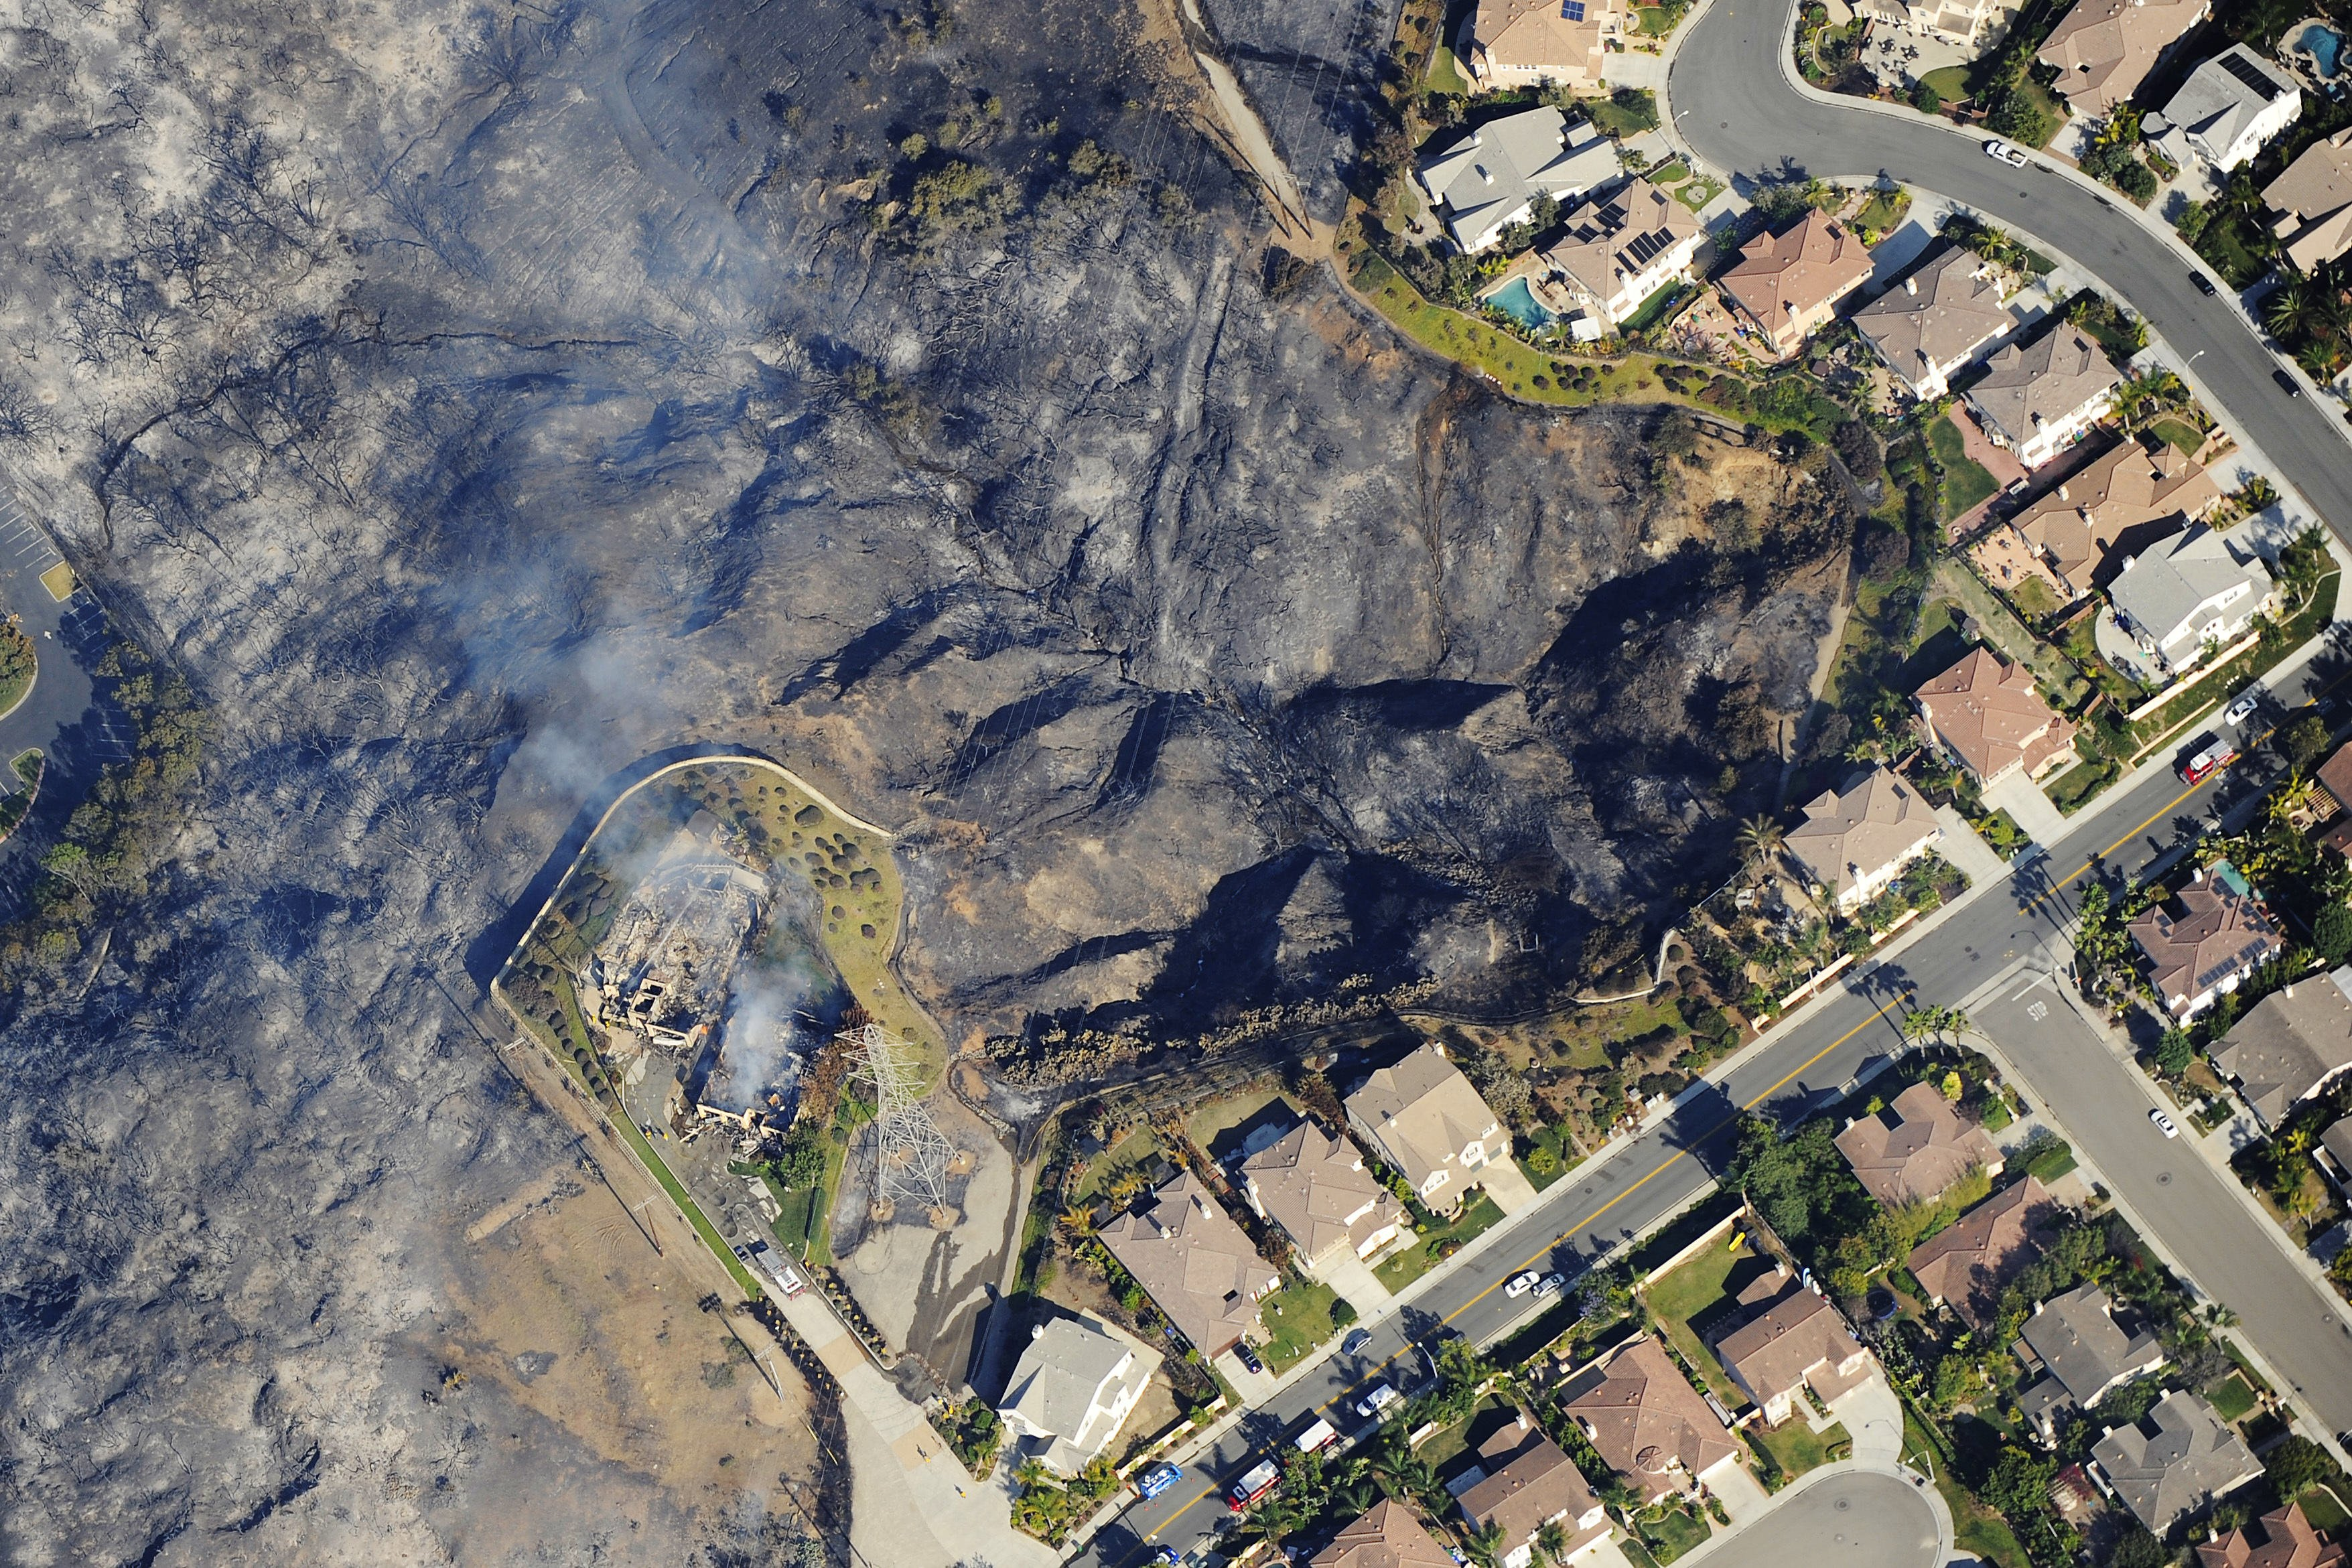 Houses smolder after a wildfire destroyed them, Carlsbad, Calif., May 14, 2014.